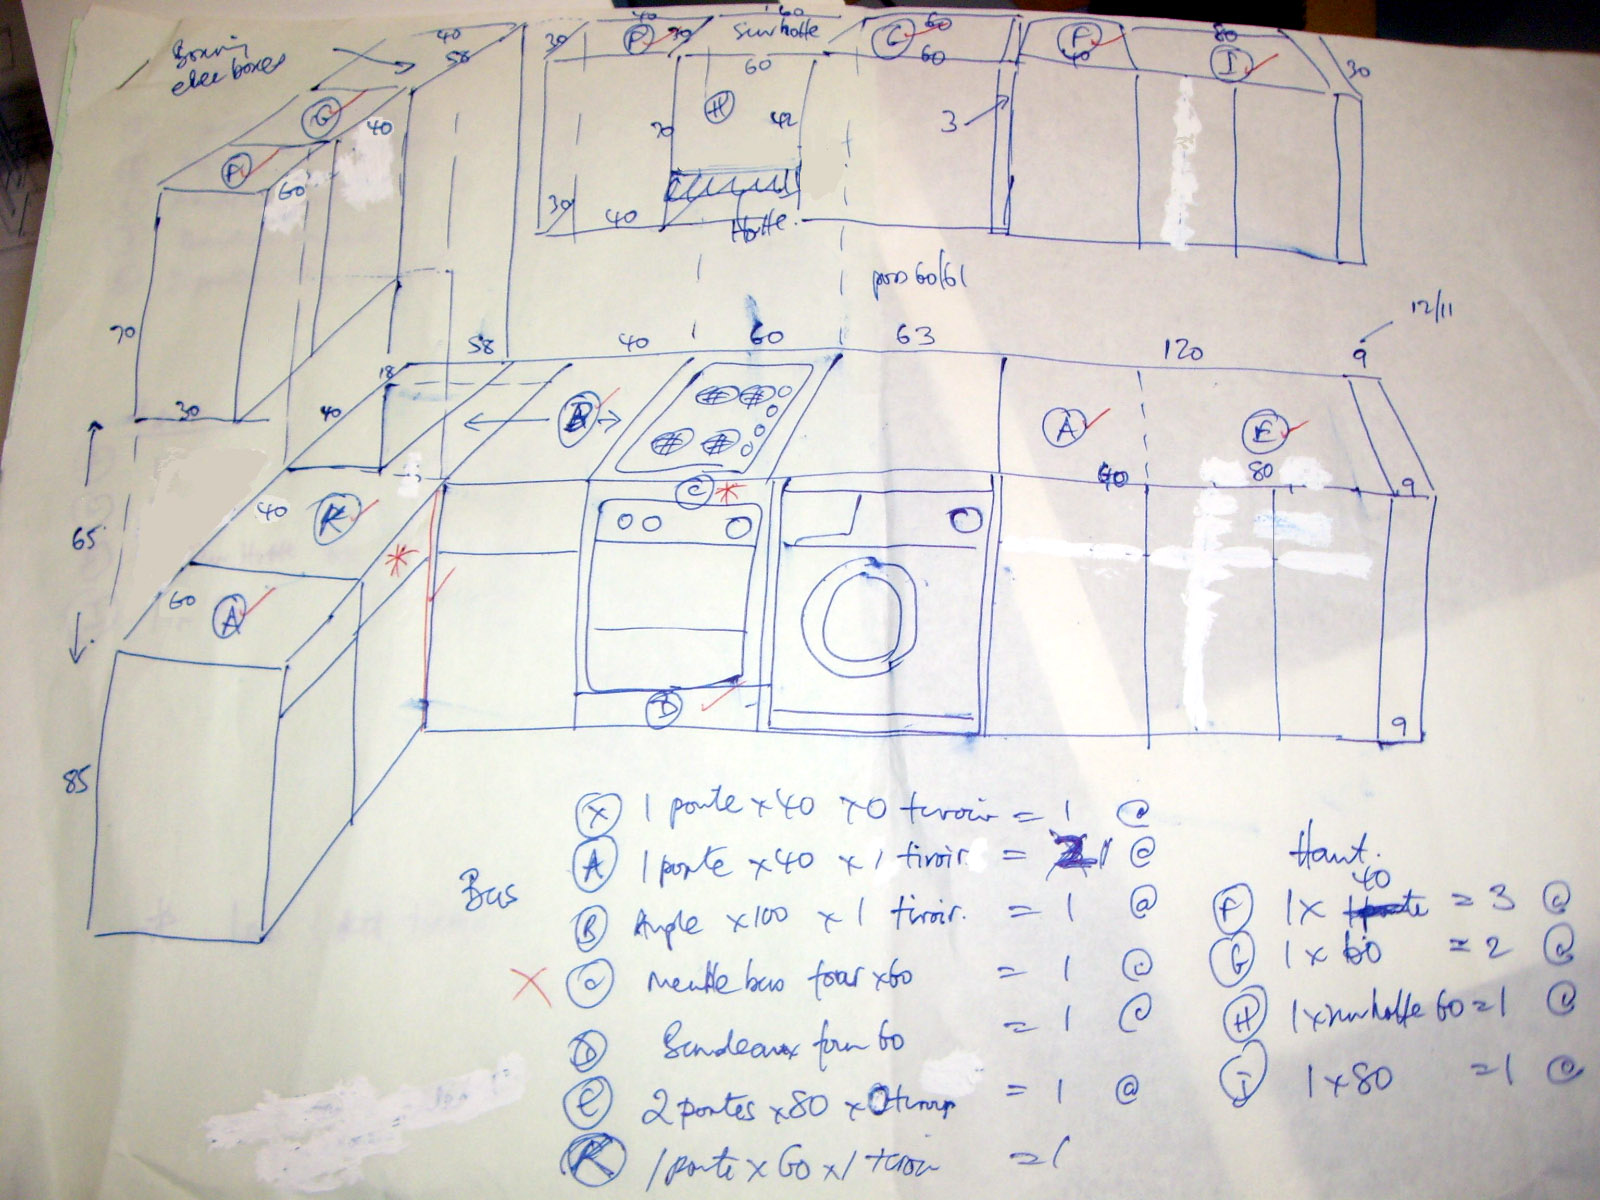 nutone fan 769rft wiring diagram for a bathroom wiring diagram of a bathroom may 2013 ndash my trike #5